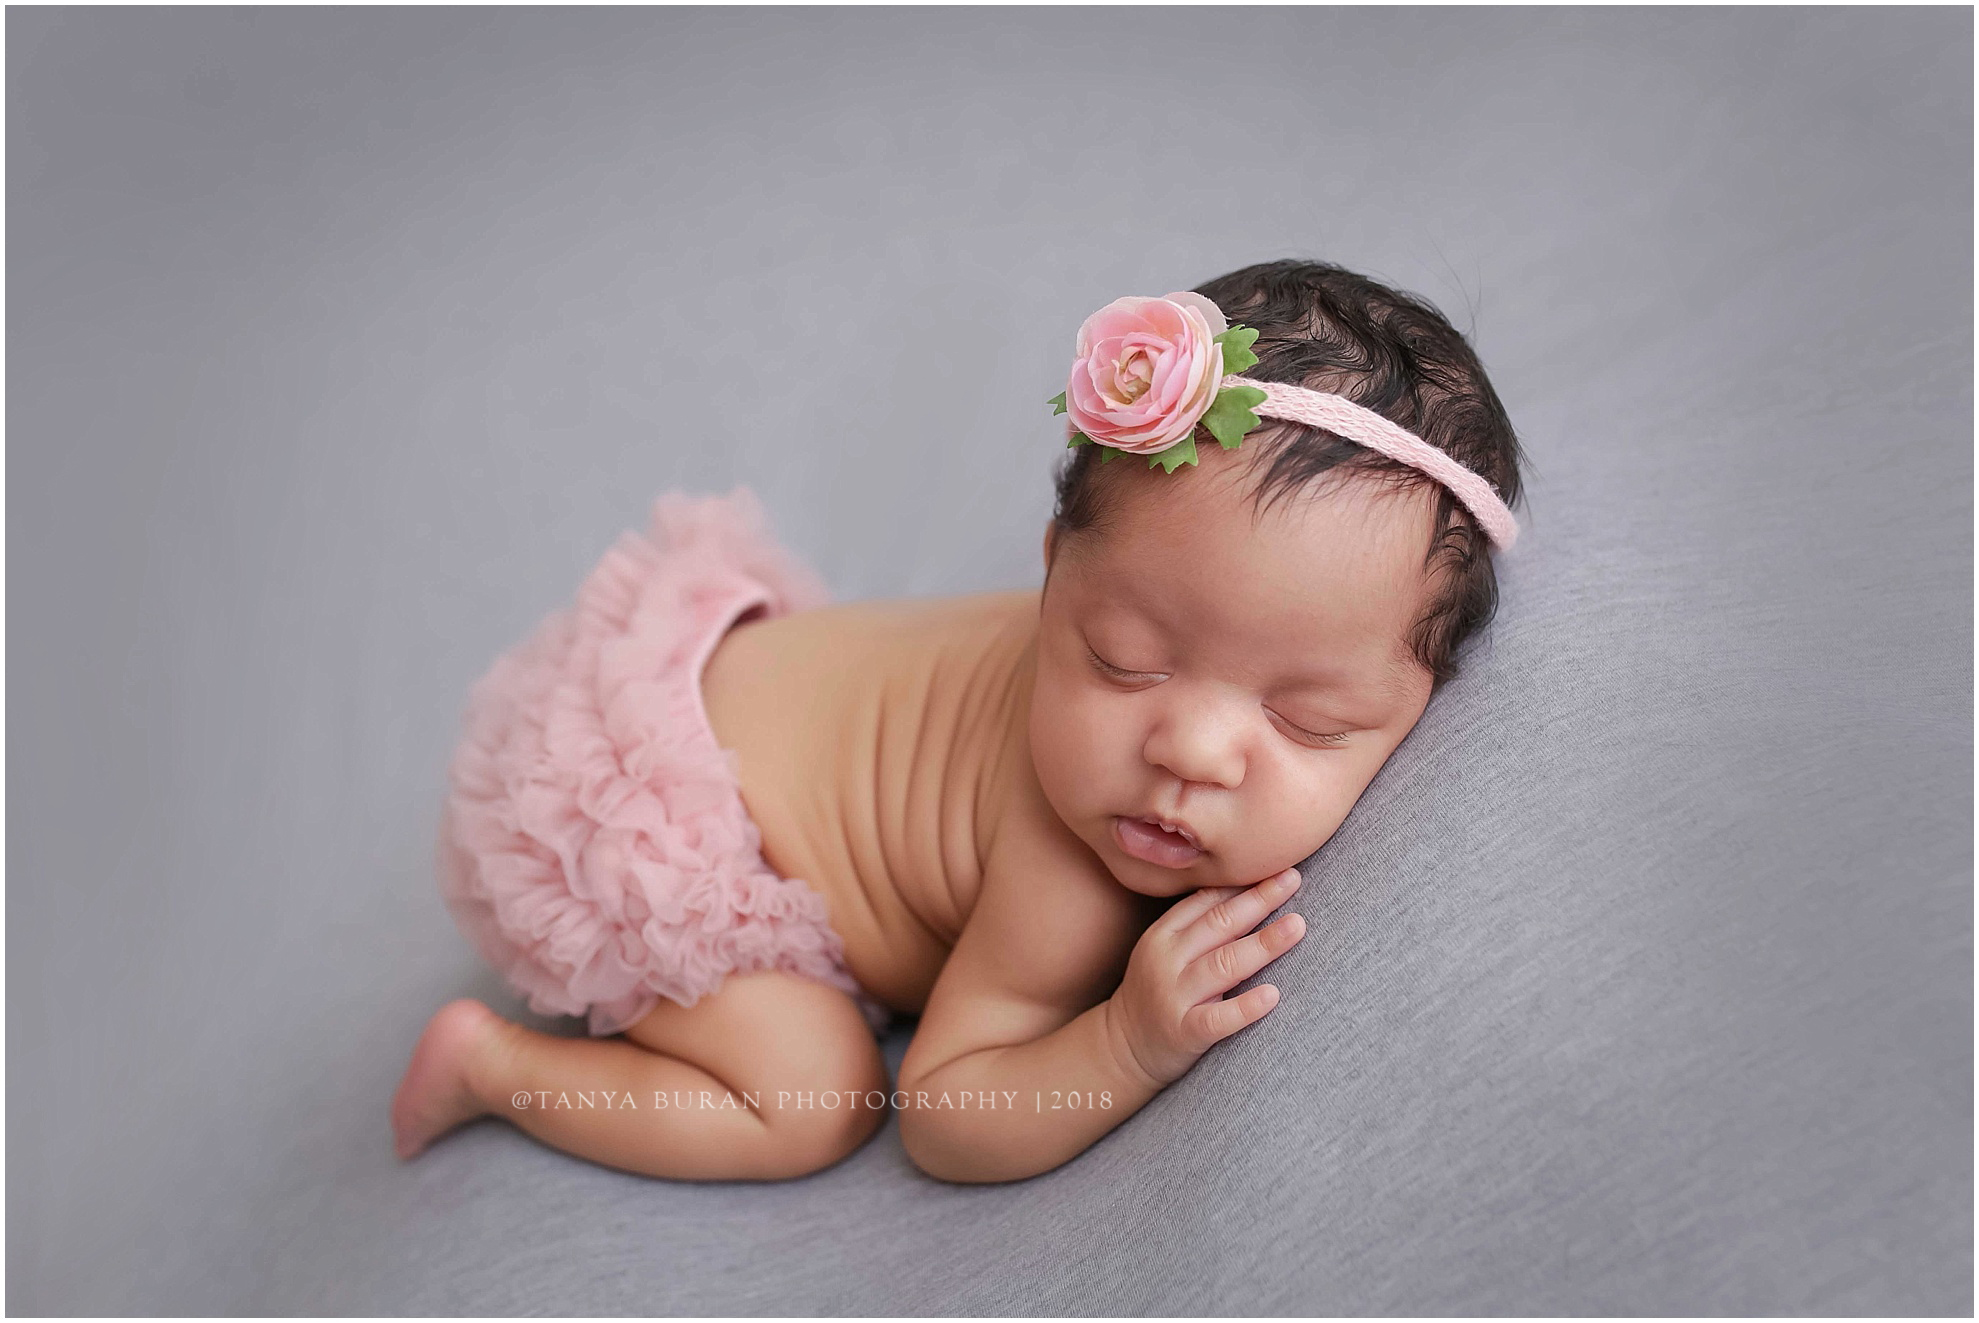 Newborn session victoria 7 weeks old jersey city newborn photographer tanya buran photography